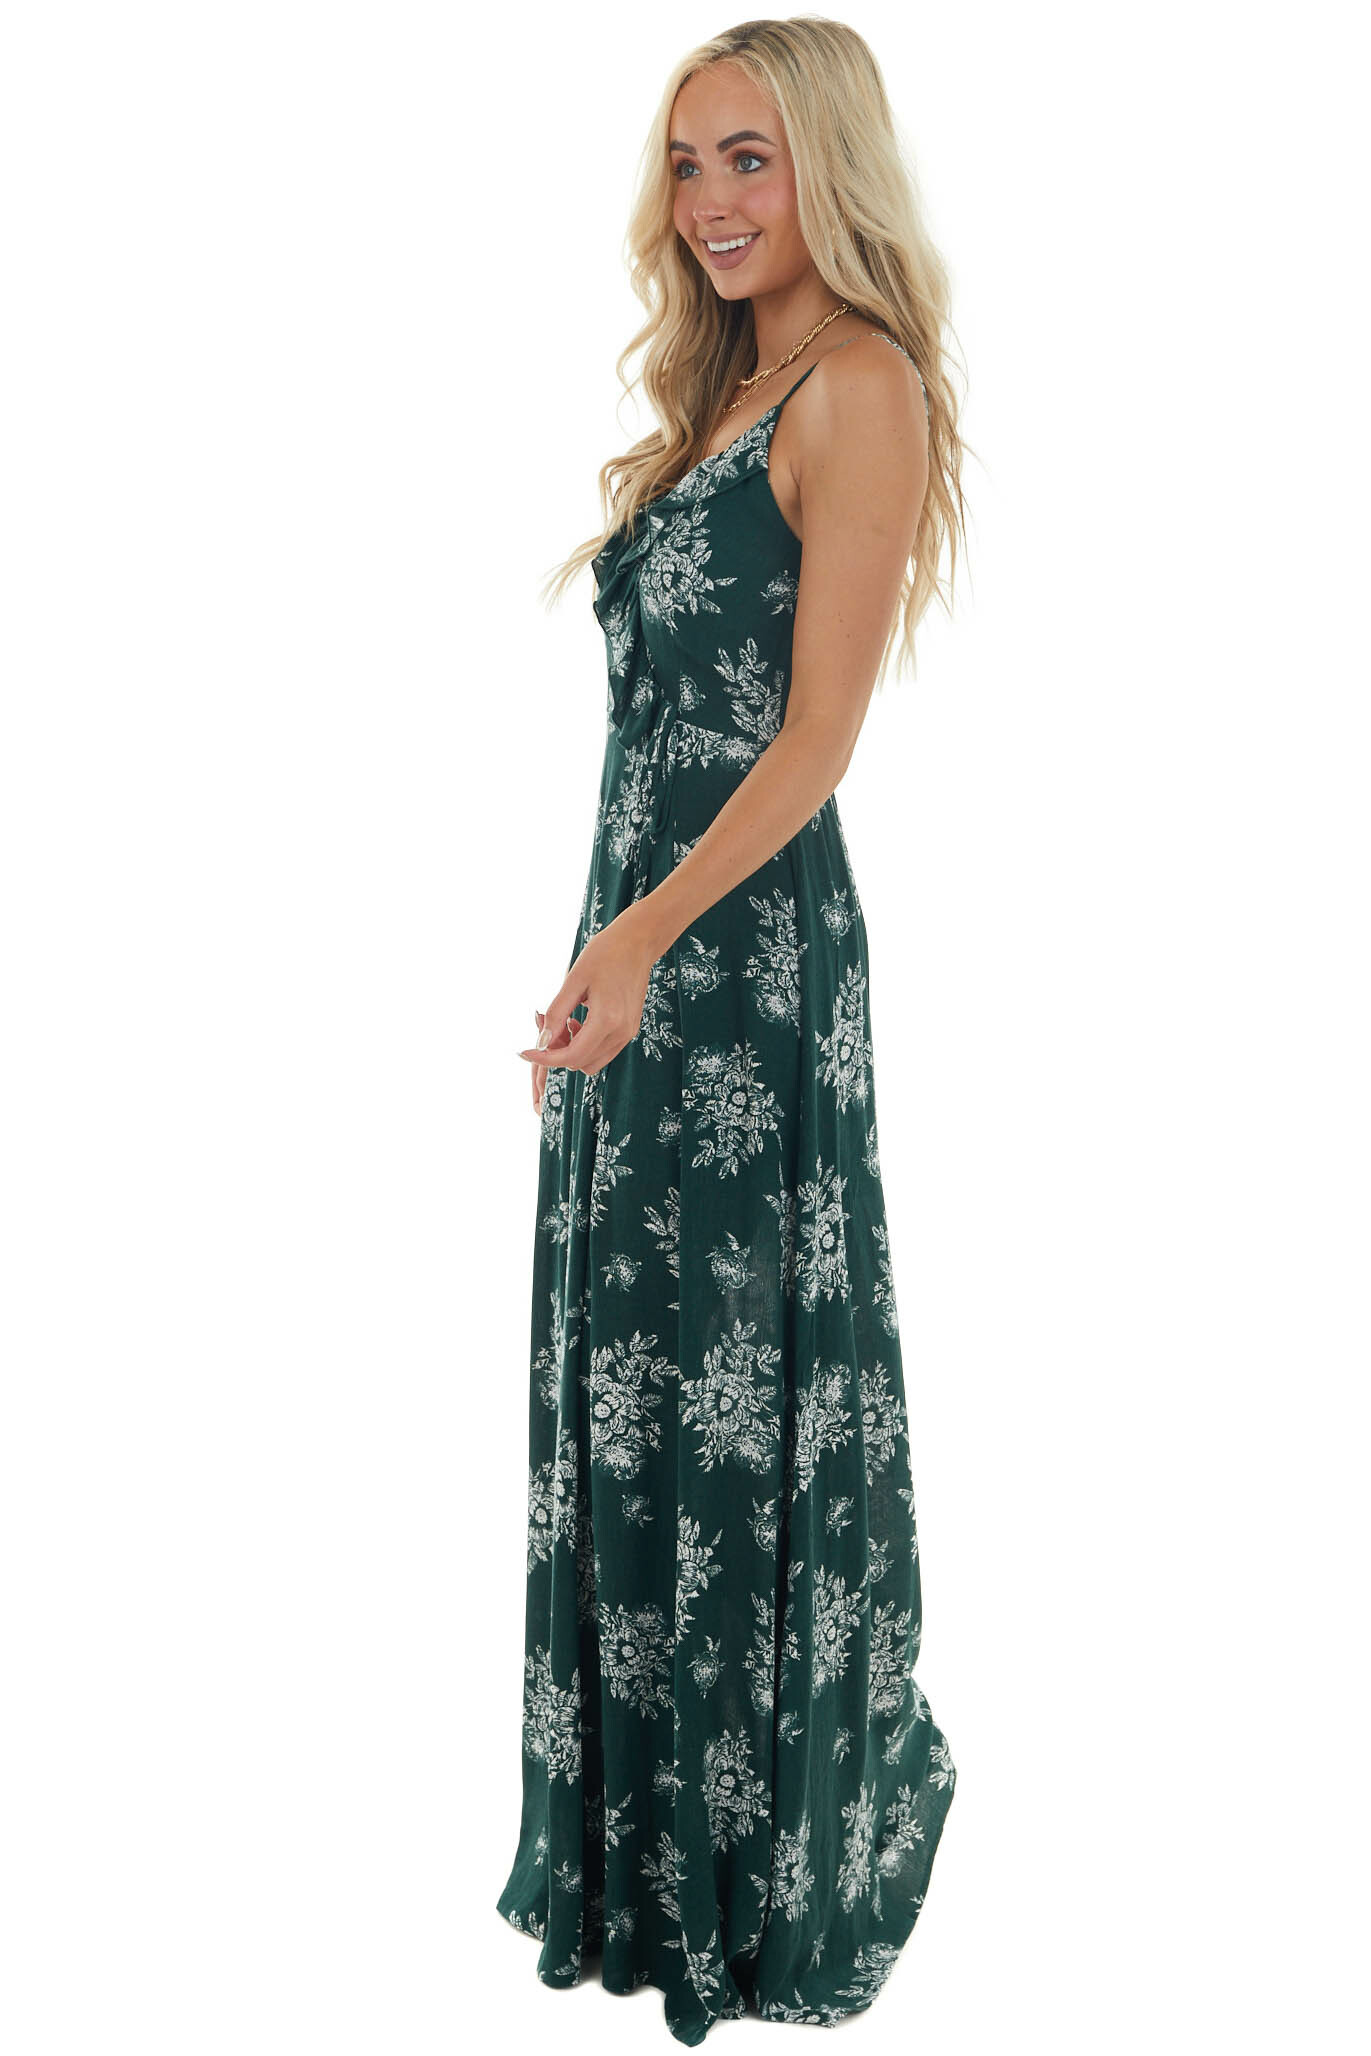 Forest Green and Ivory Floral Print Maxi Dress